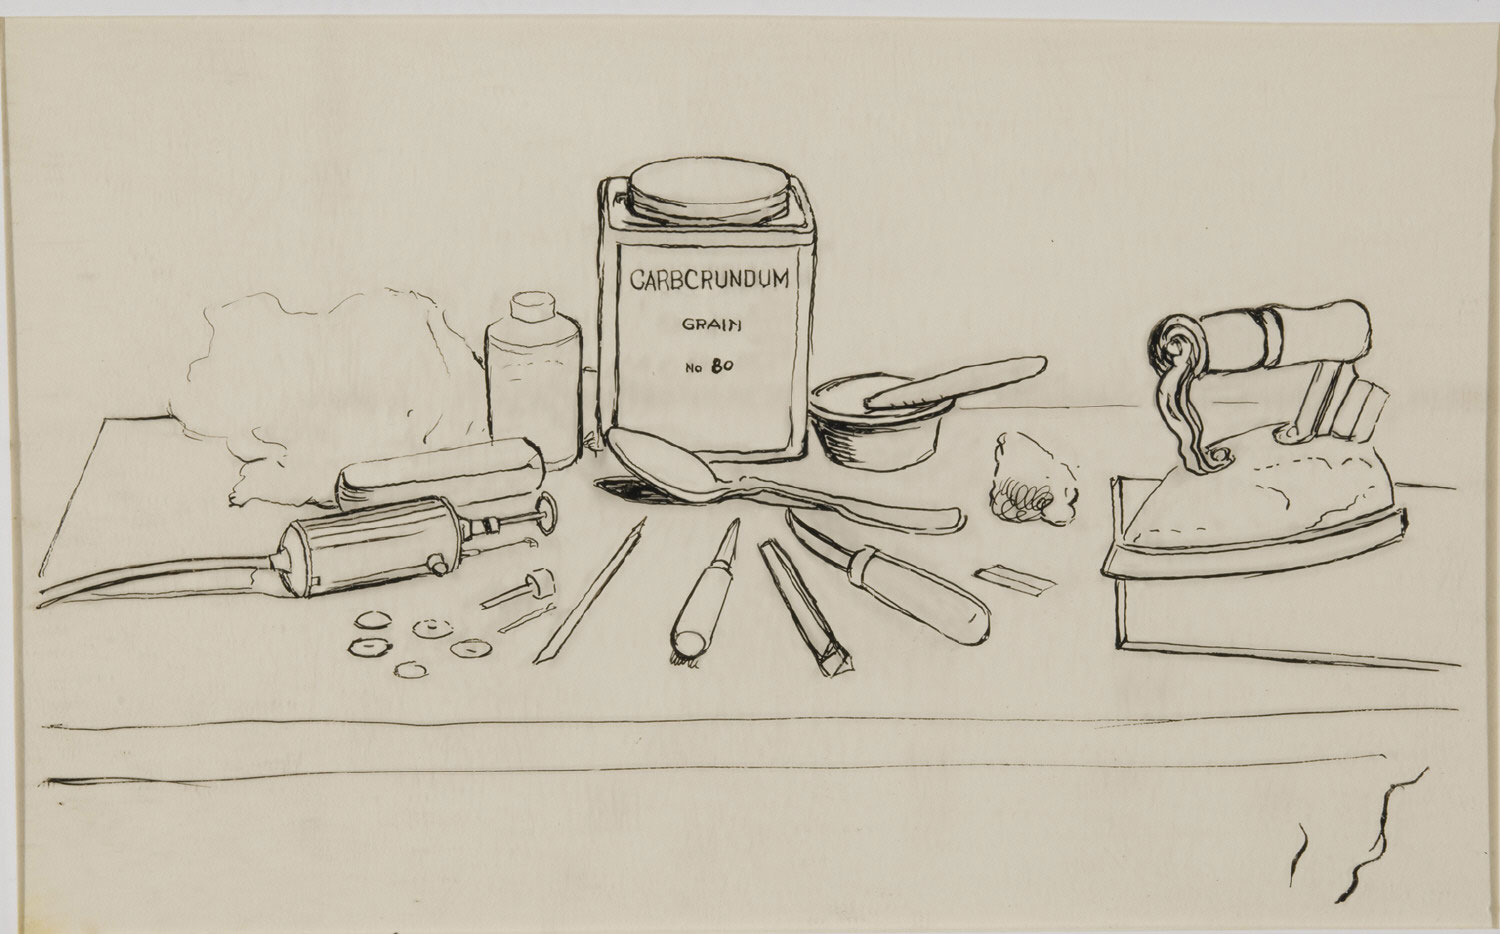 Array of Tools and Materials for Making Carborundum Mezzotints